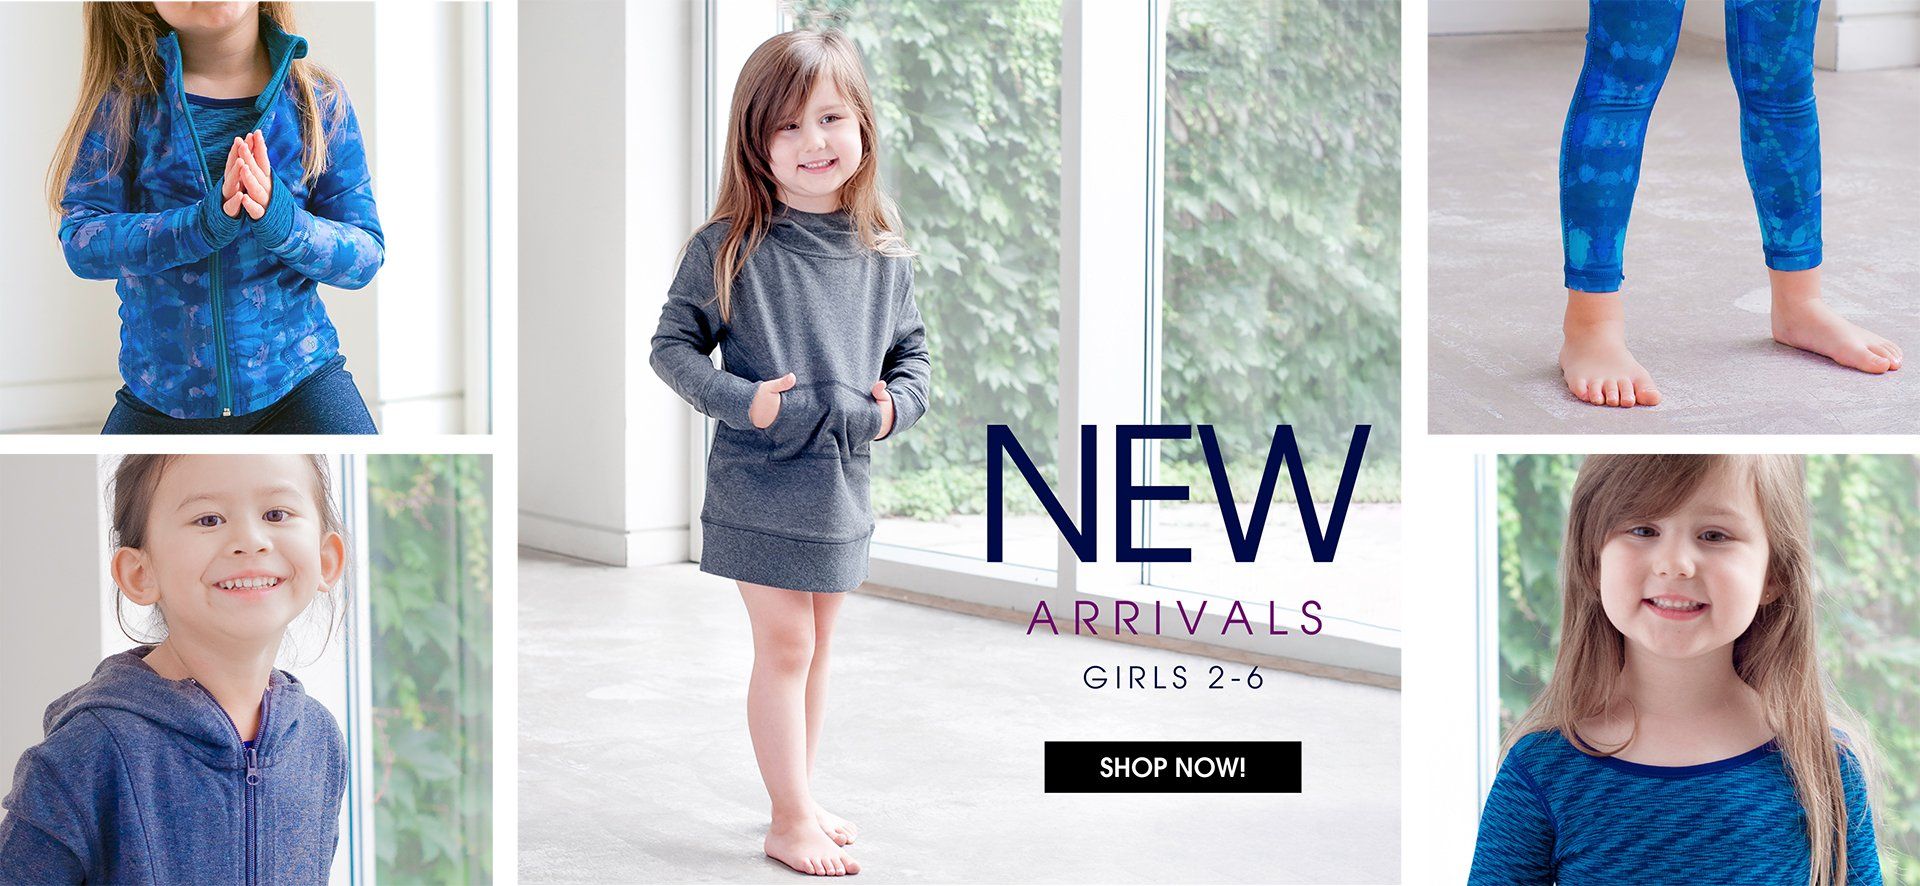 Shop Girls 2-6 New Arrivals